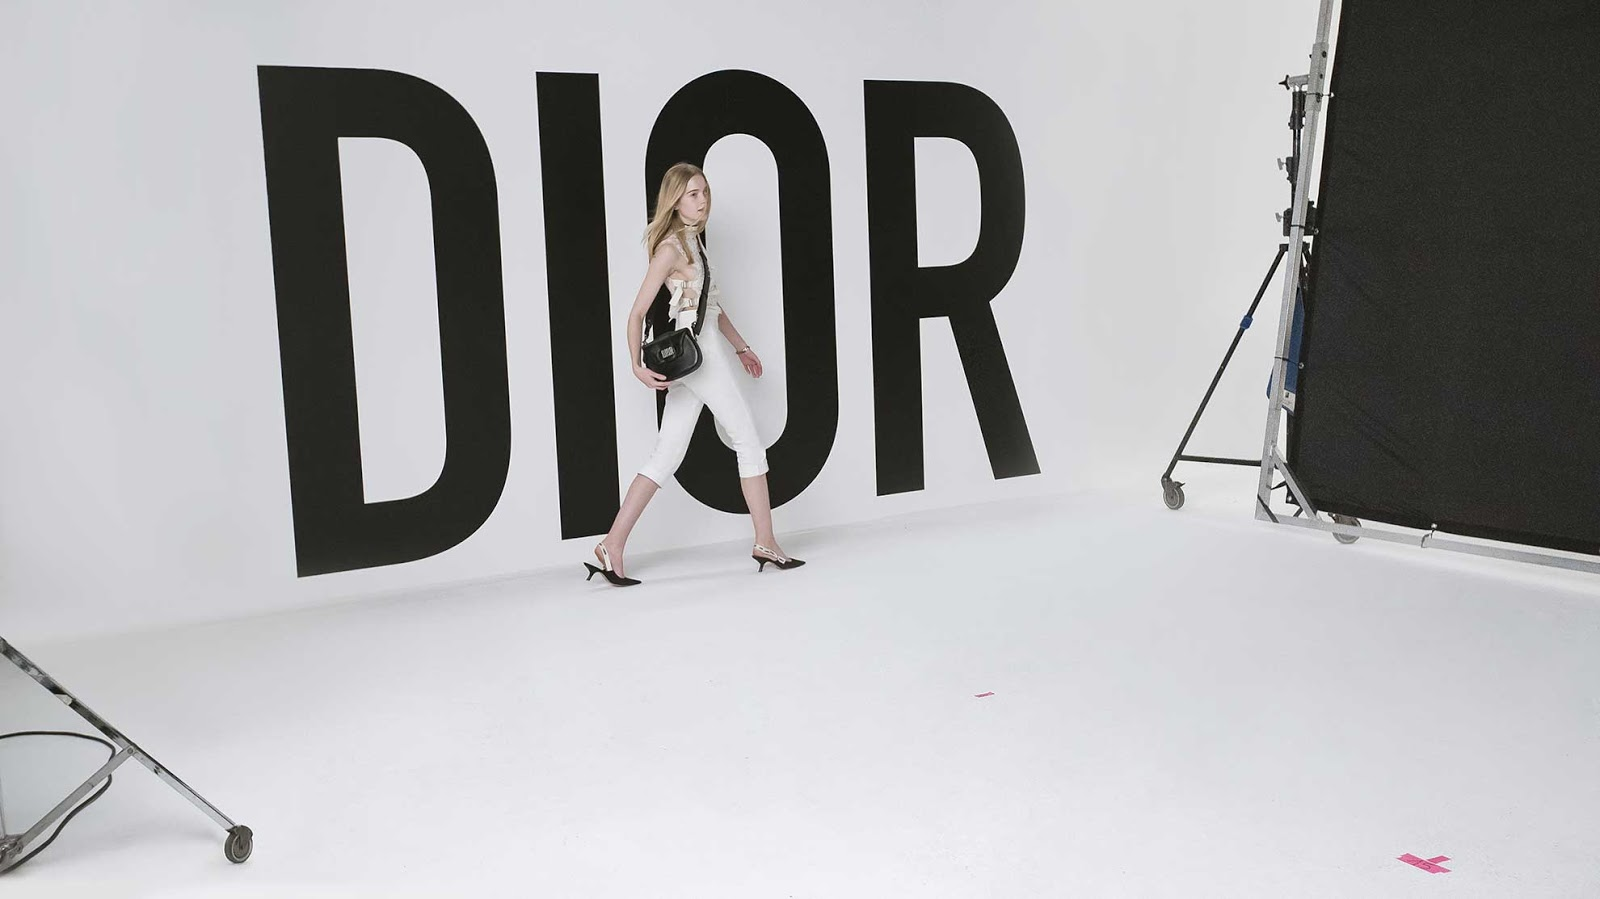 Dior's Spring/Summer 17 Campaign Videos